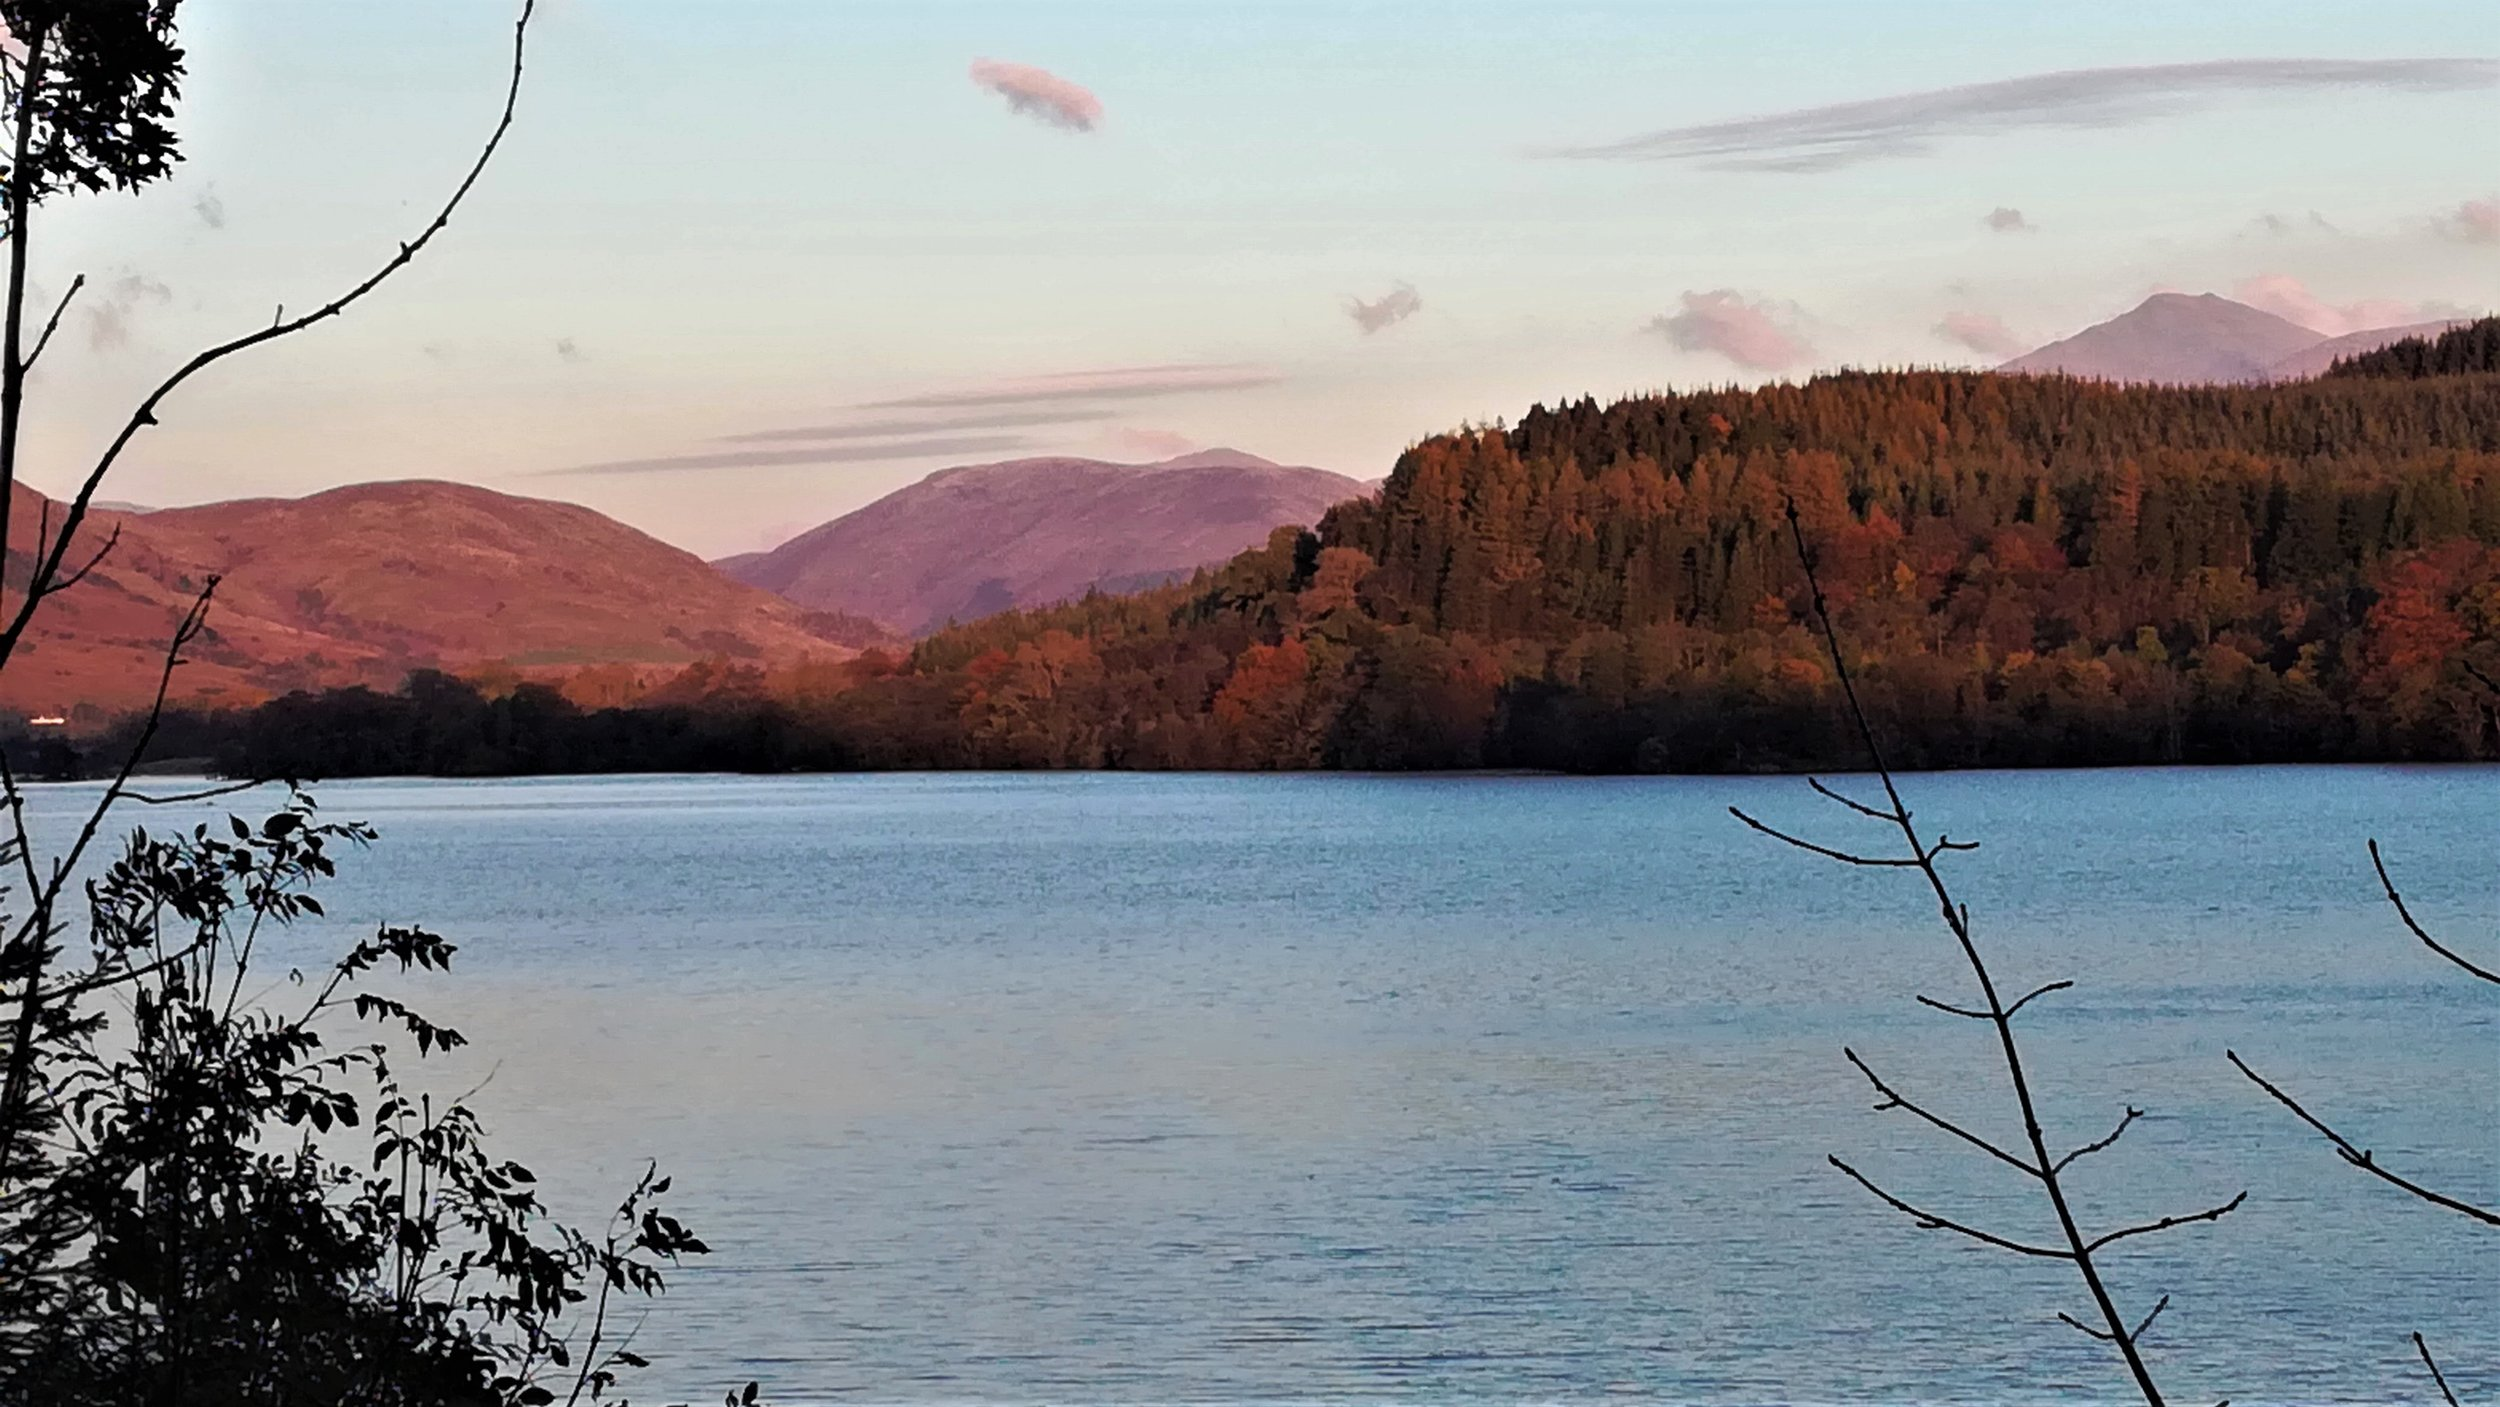 Loch Awe, Scottish Highlands,tours with walks, small group adventures, Roaming Scotland .jpg